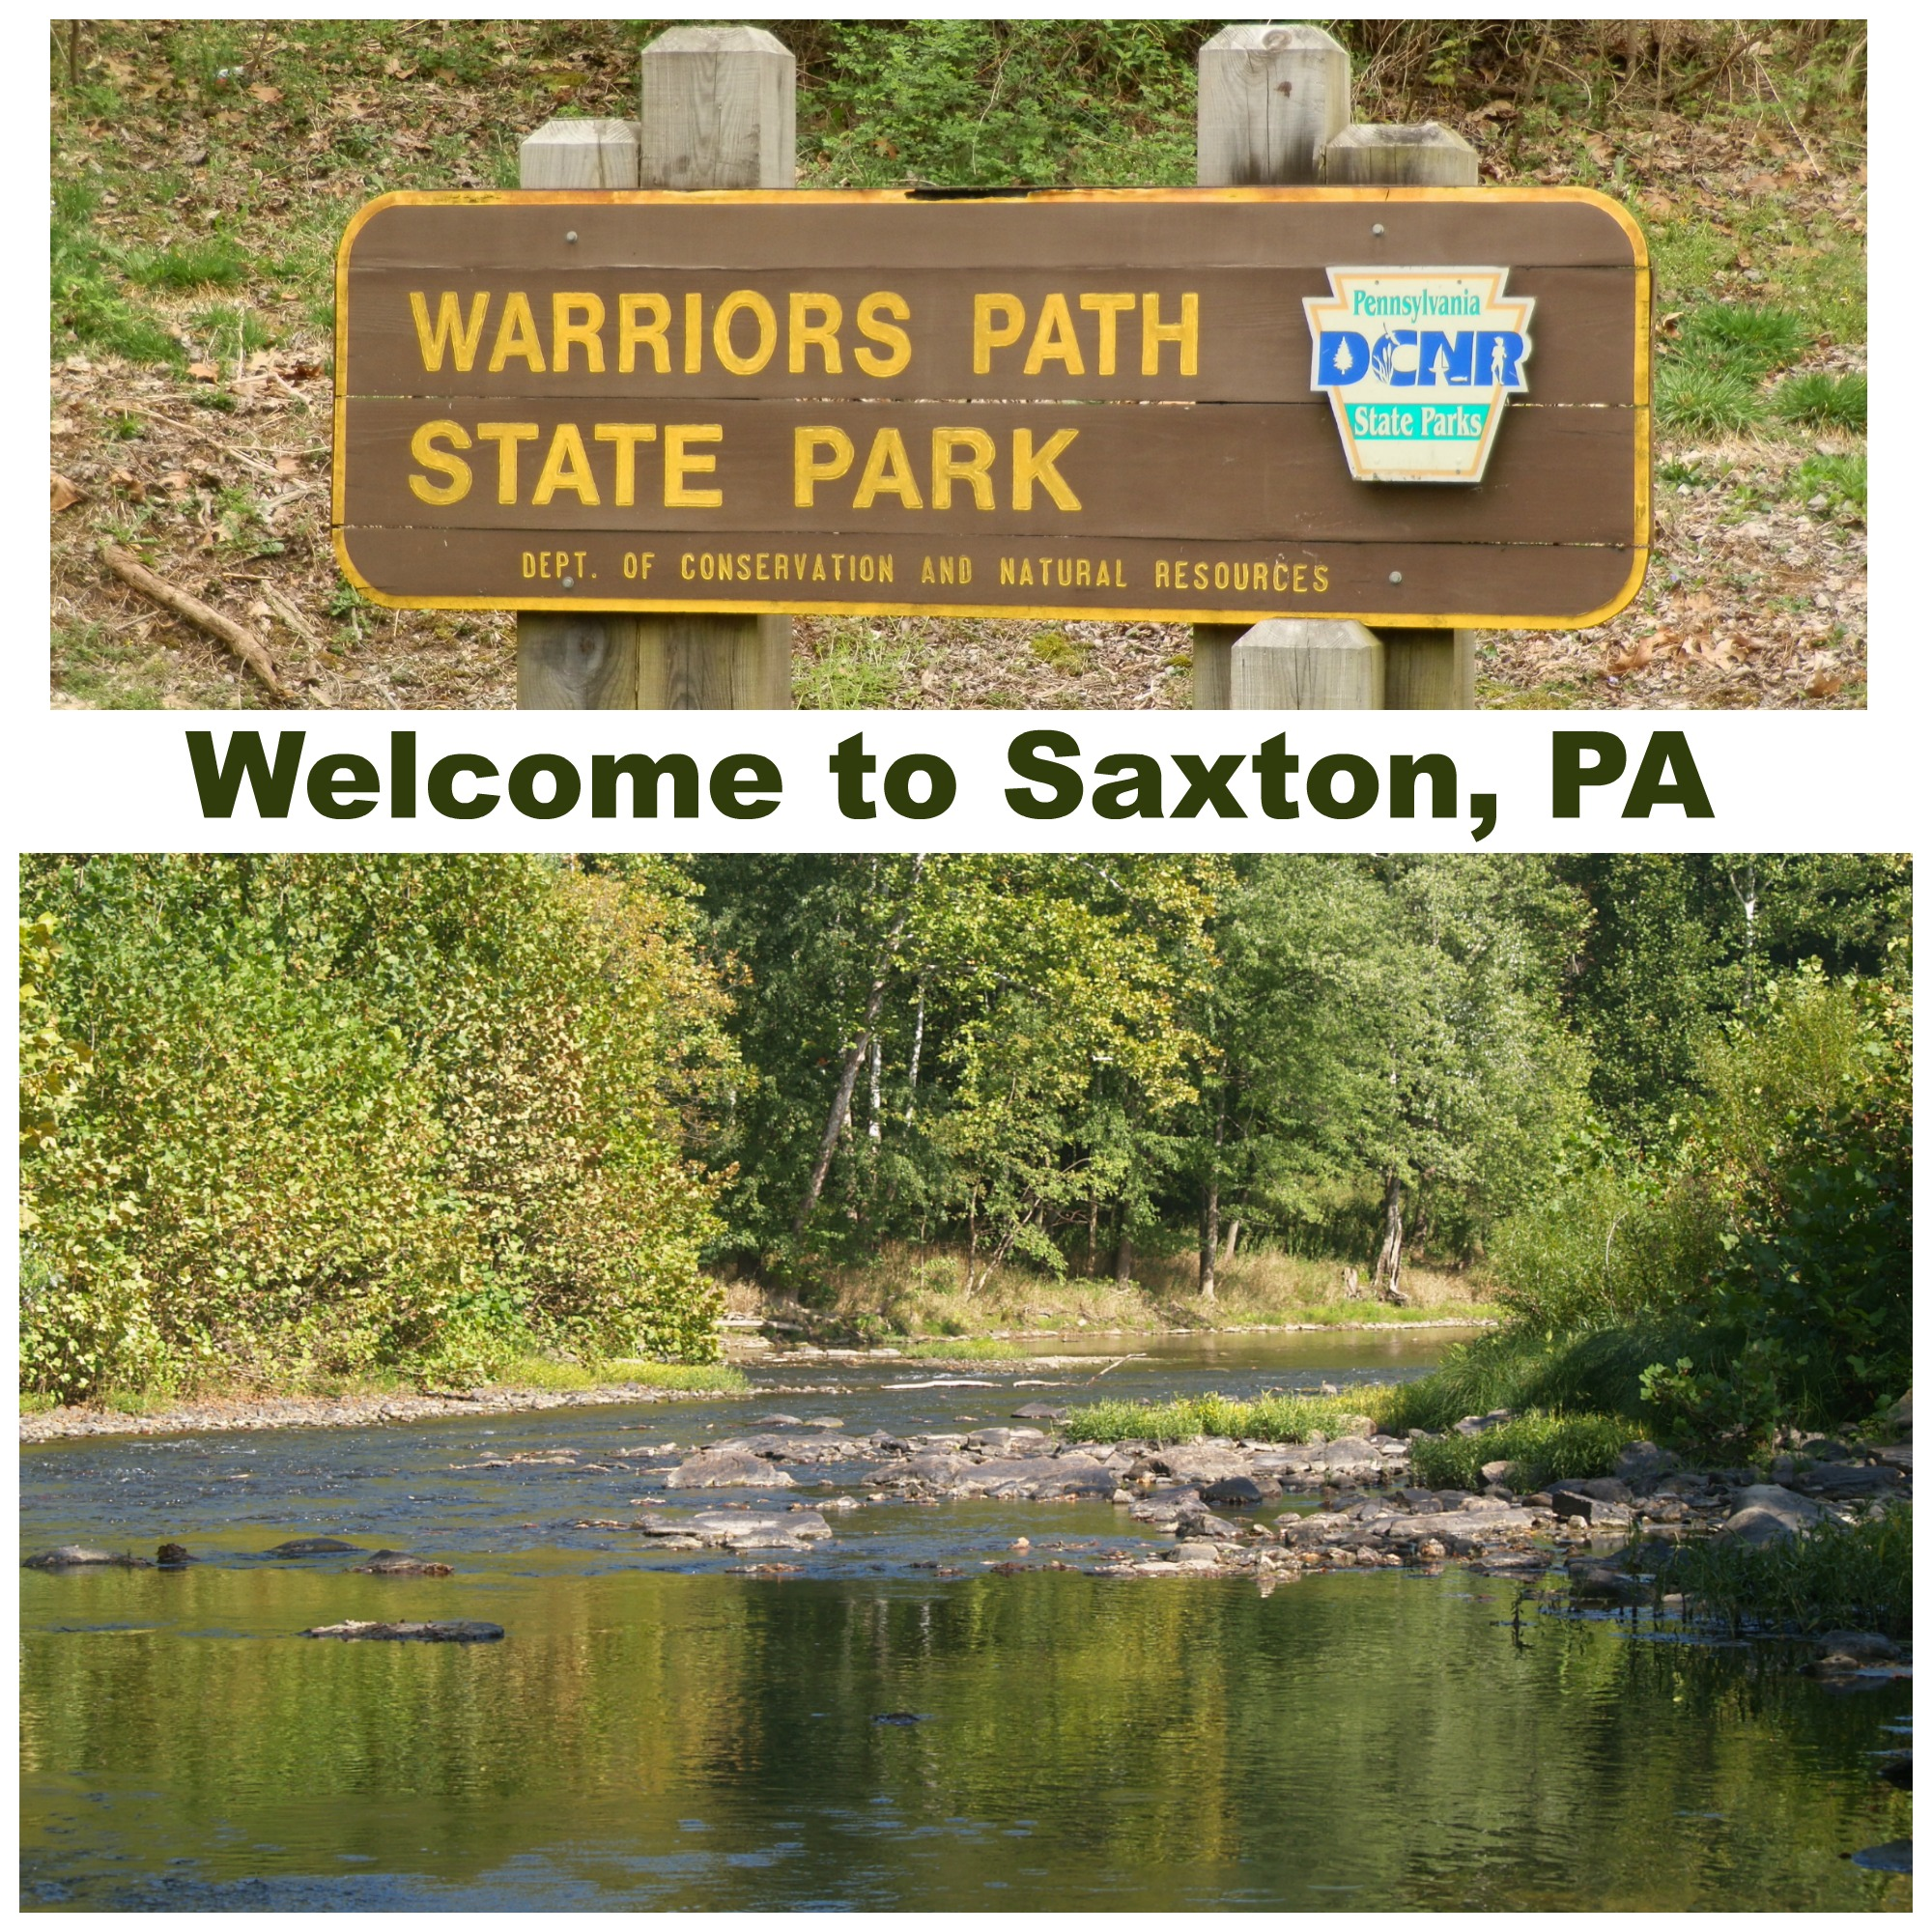 Warriors Path State Park